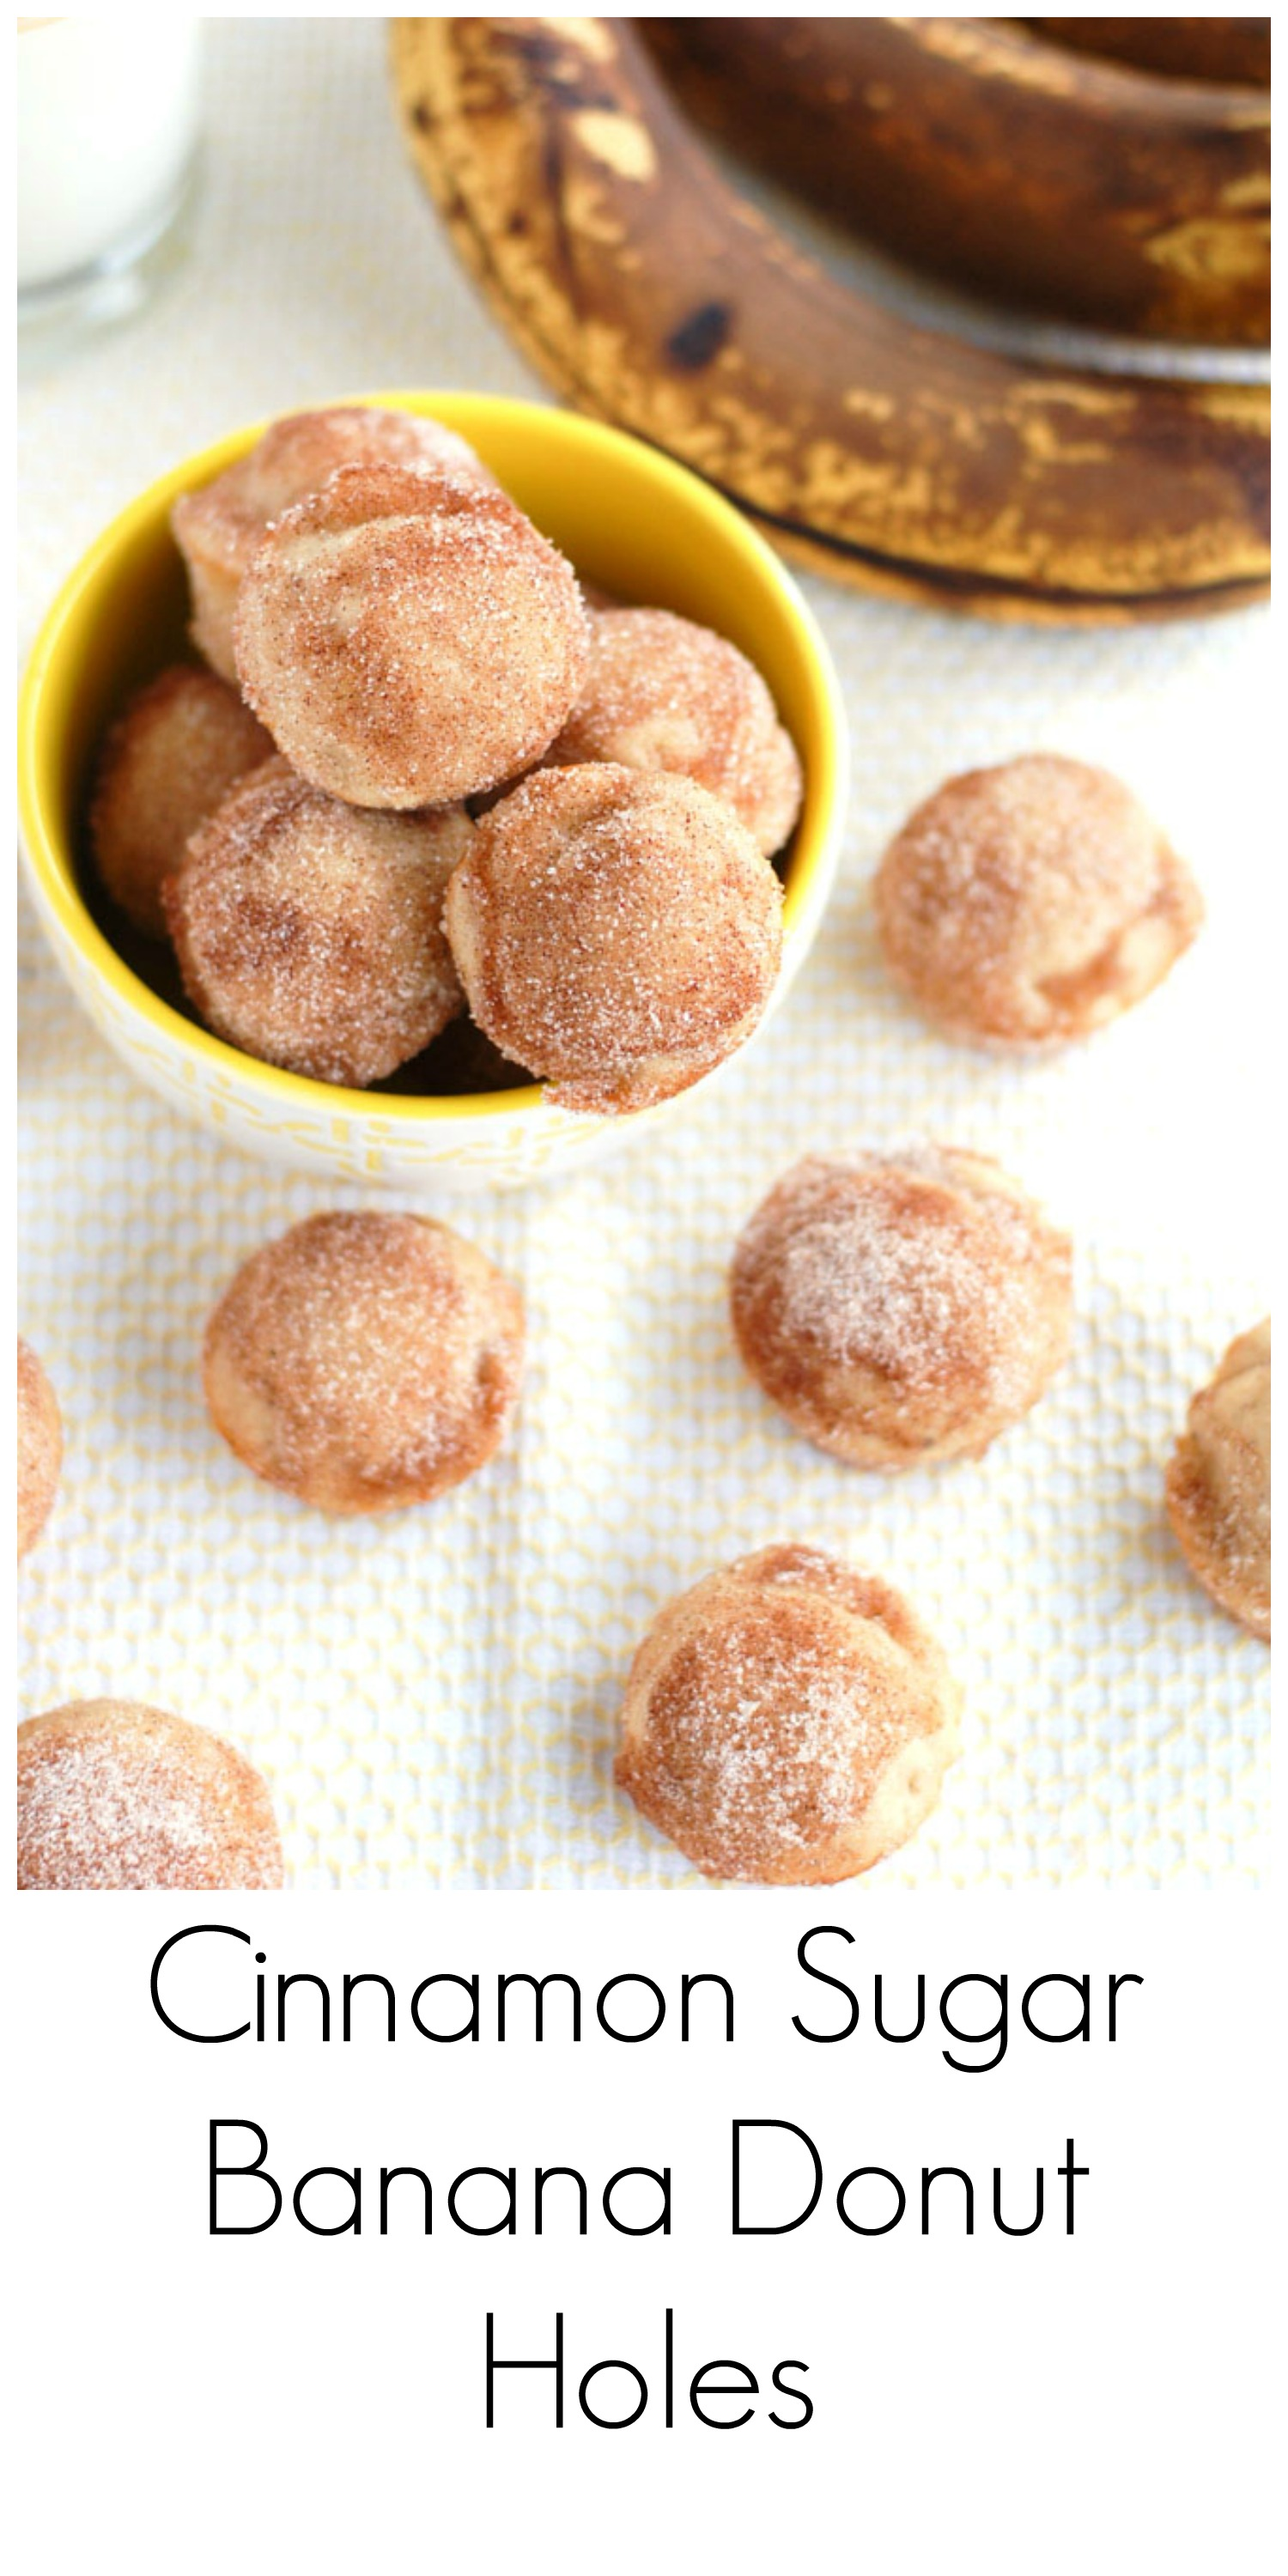 Cinnamon Sugar Banana Donut Holes - Food Lovin Family